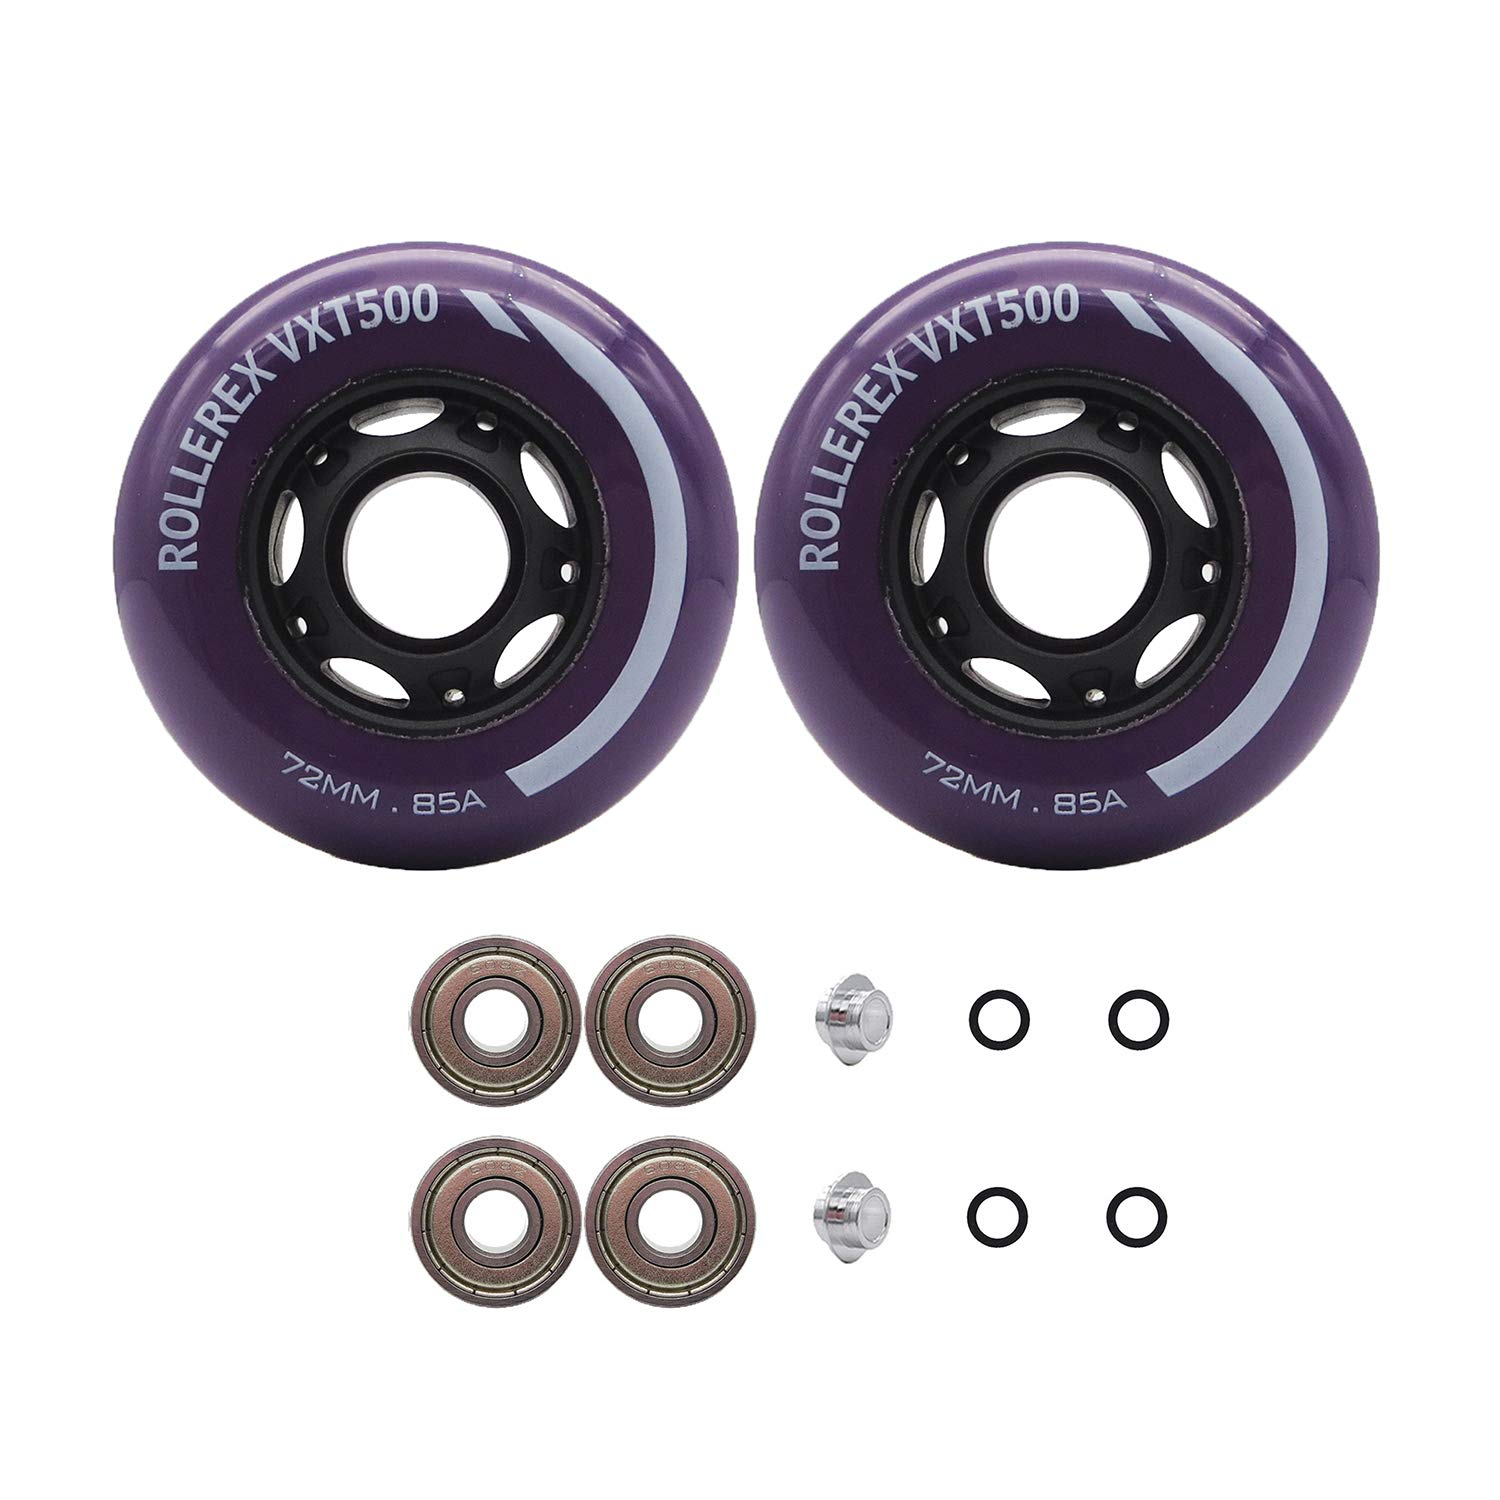 Rollerex VXT500 Inline Skate Wheels (2-Pack w/Bearings, spacers and washers) (Royal Purple, 72mm) by Rollerex